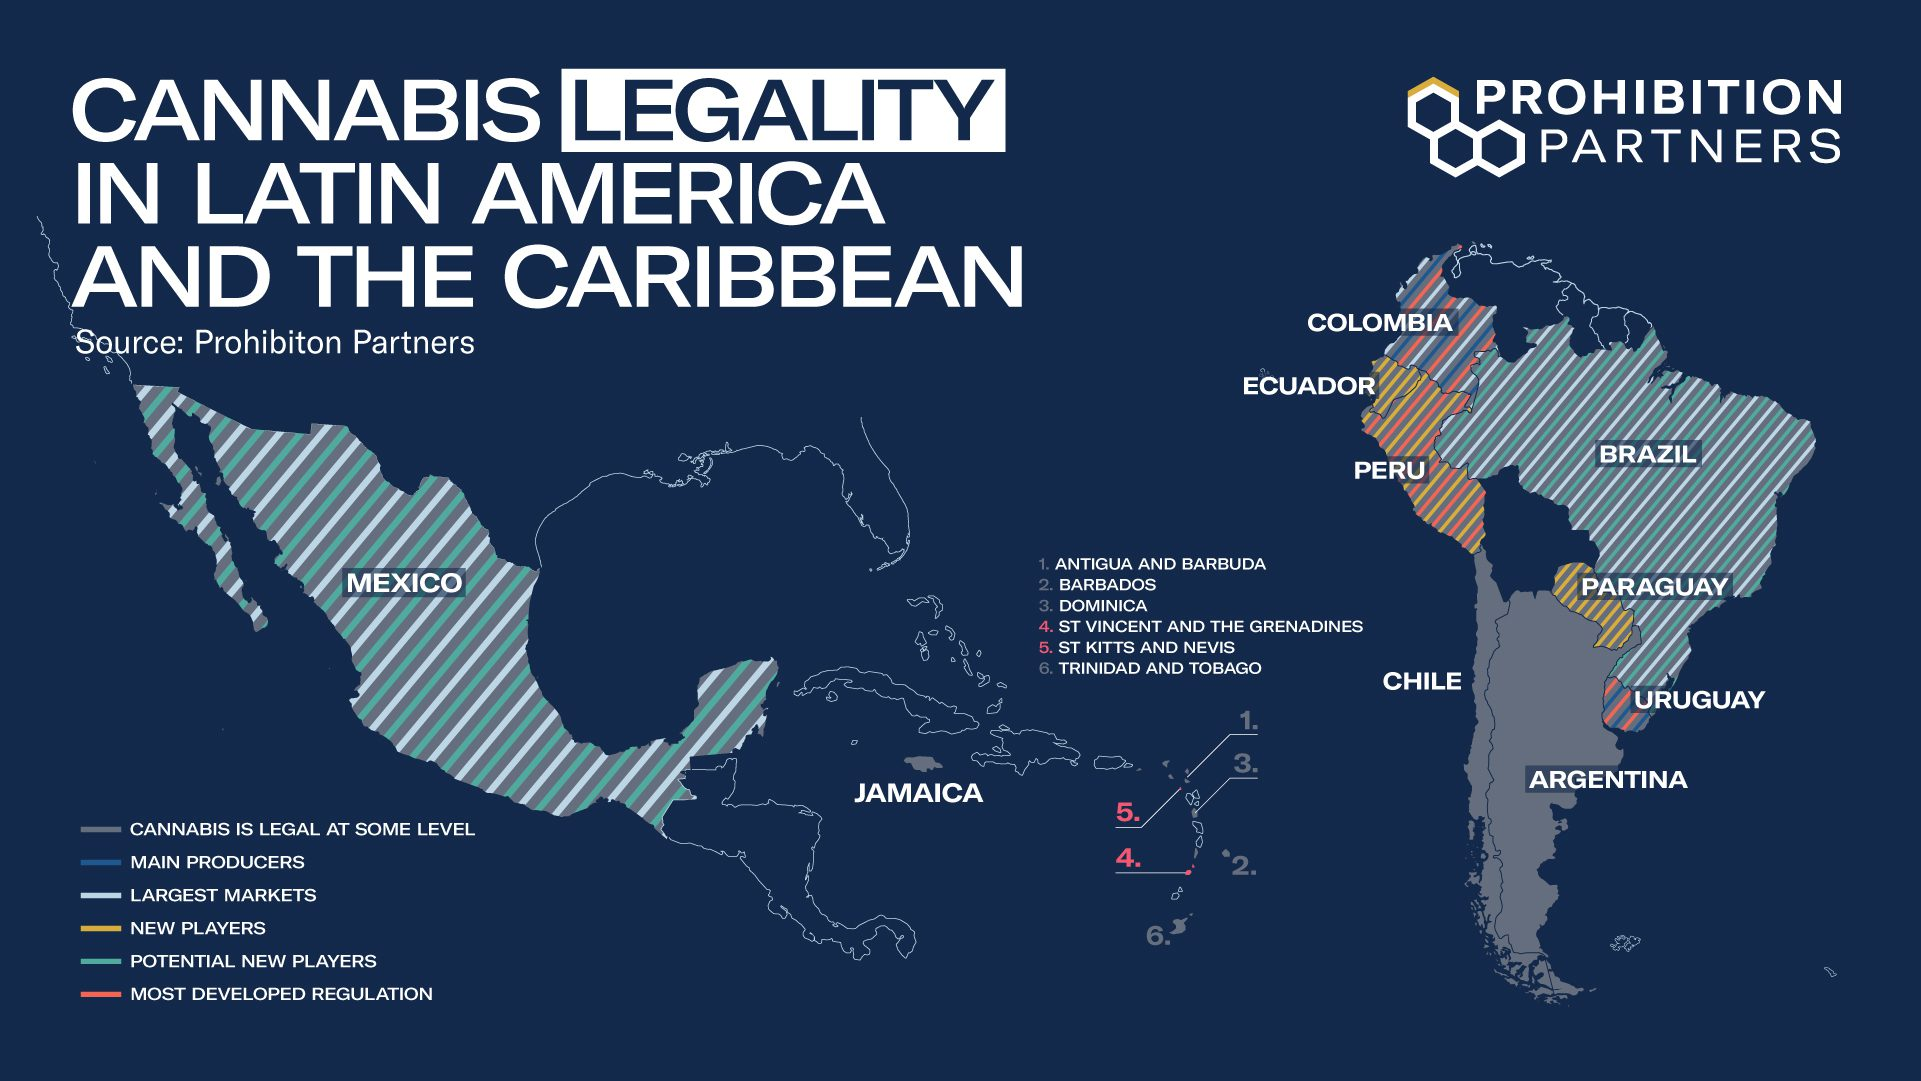 Cannabis legality in Latin America and the Caribbean